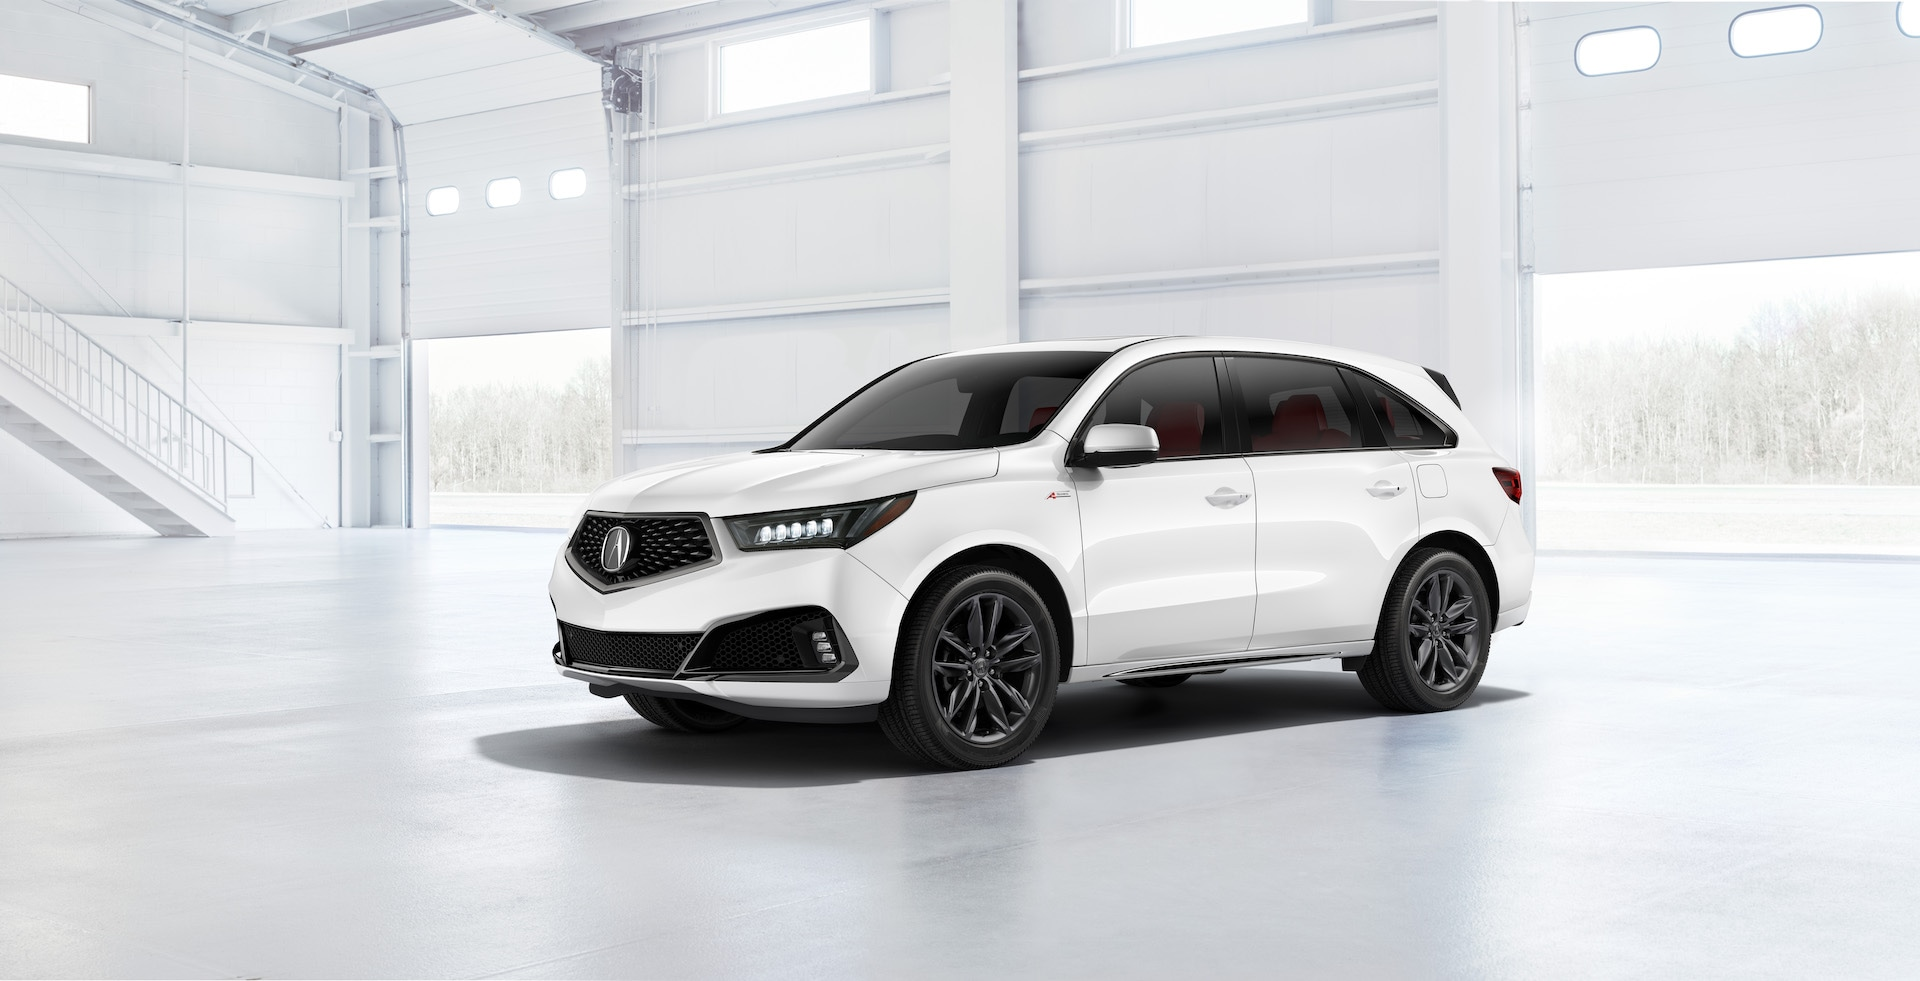 Compare the 2020 Lexus RX & the 2020 Acura MDX at Acura Hunt Valley | White 2020 Acrua MDX parked in garage